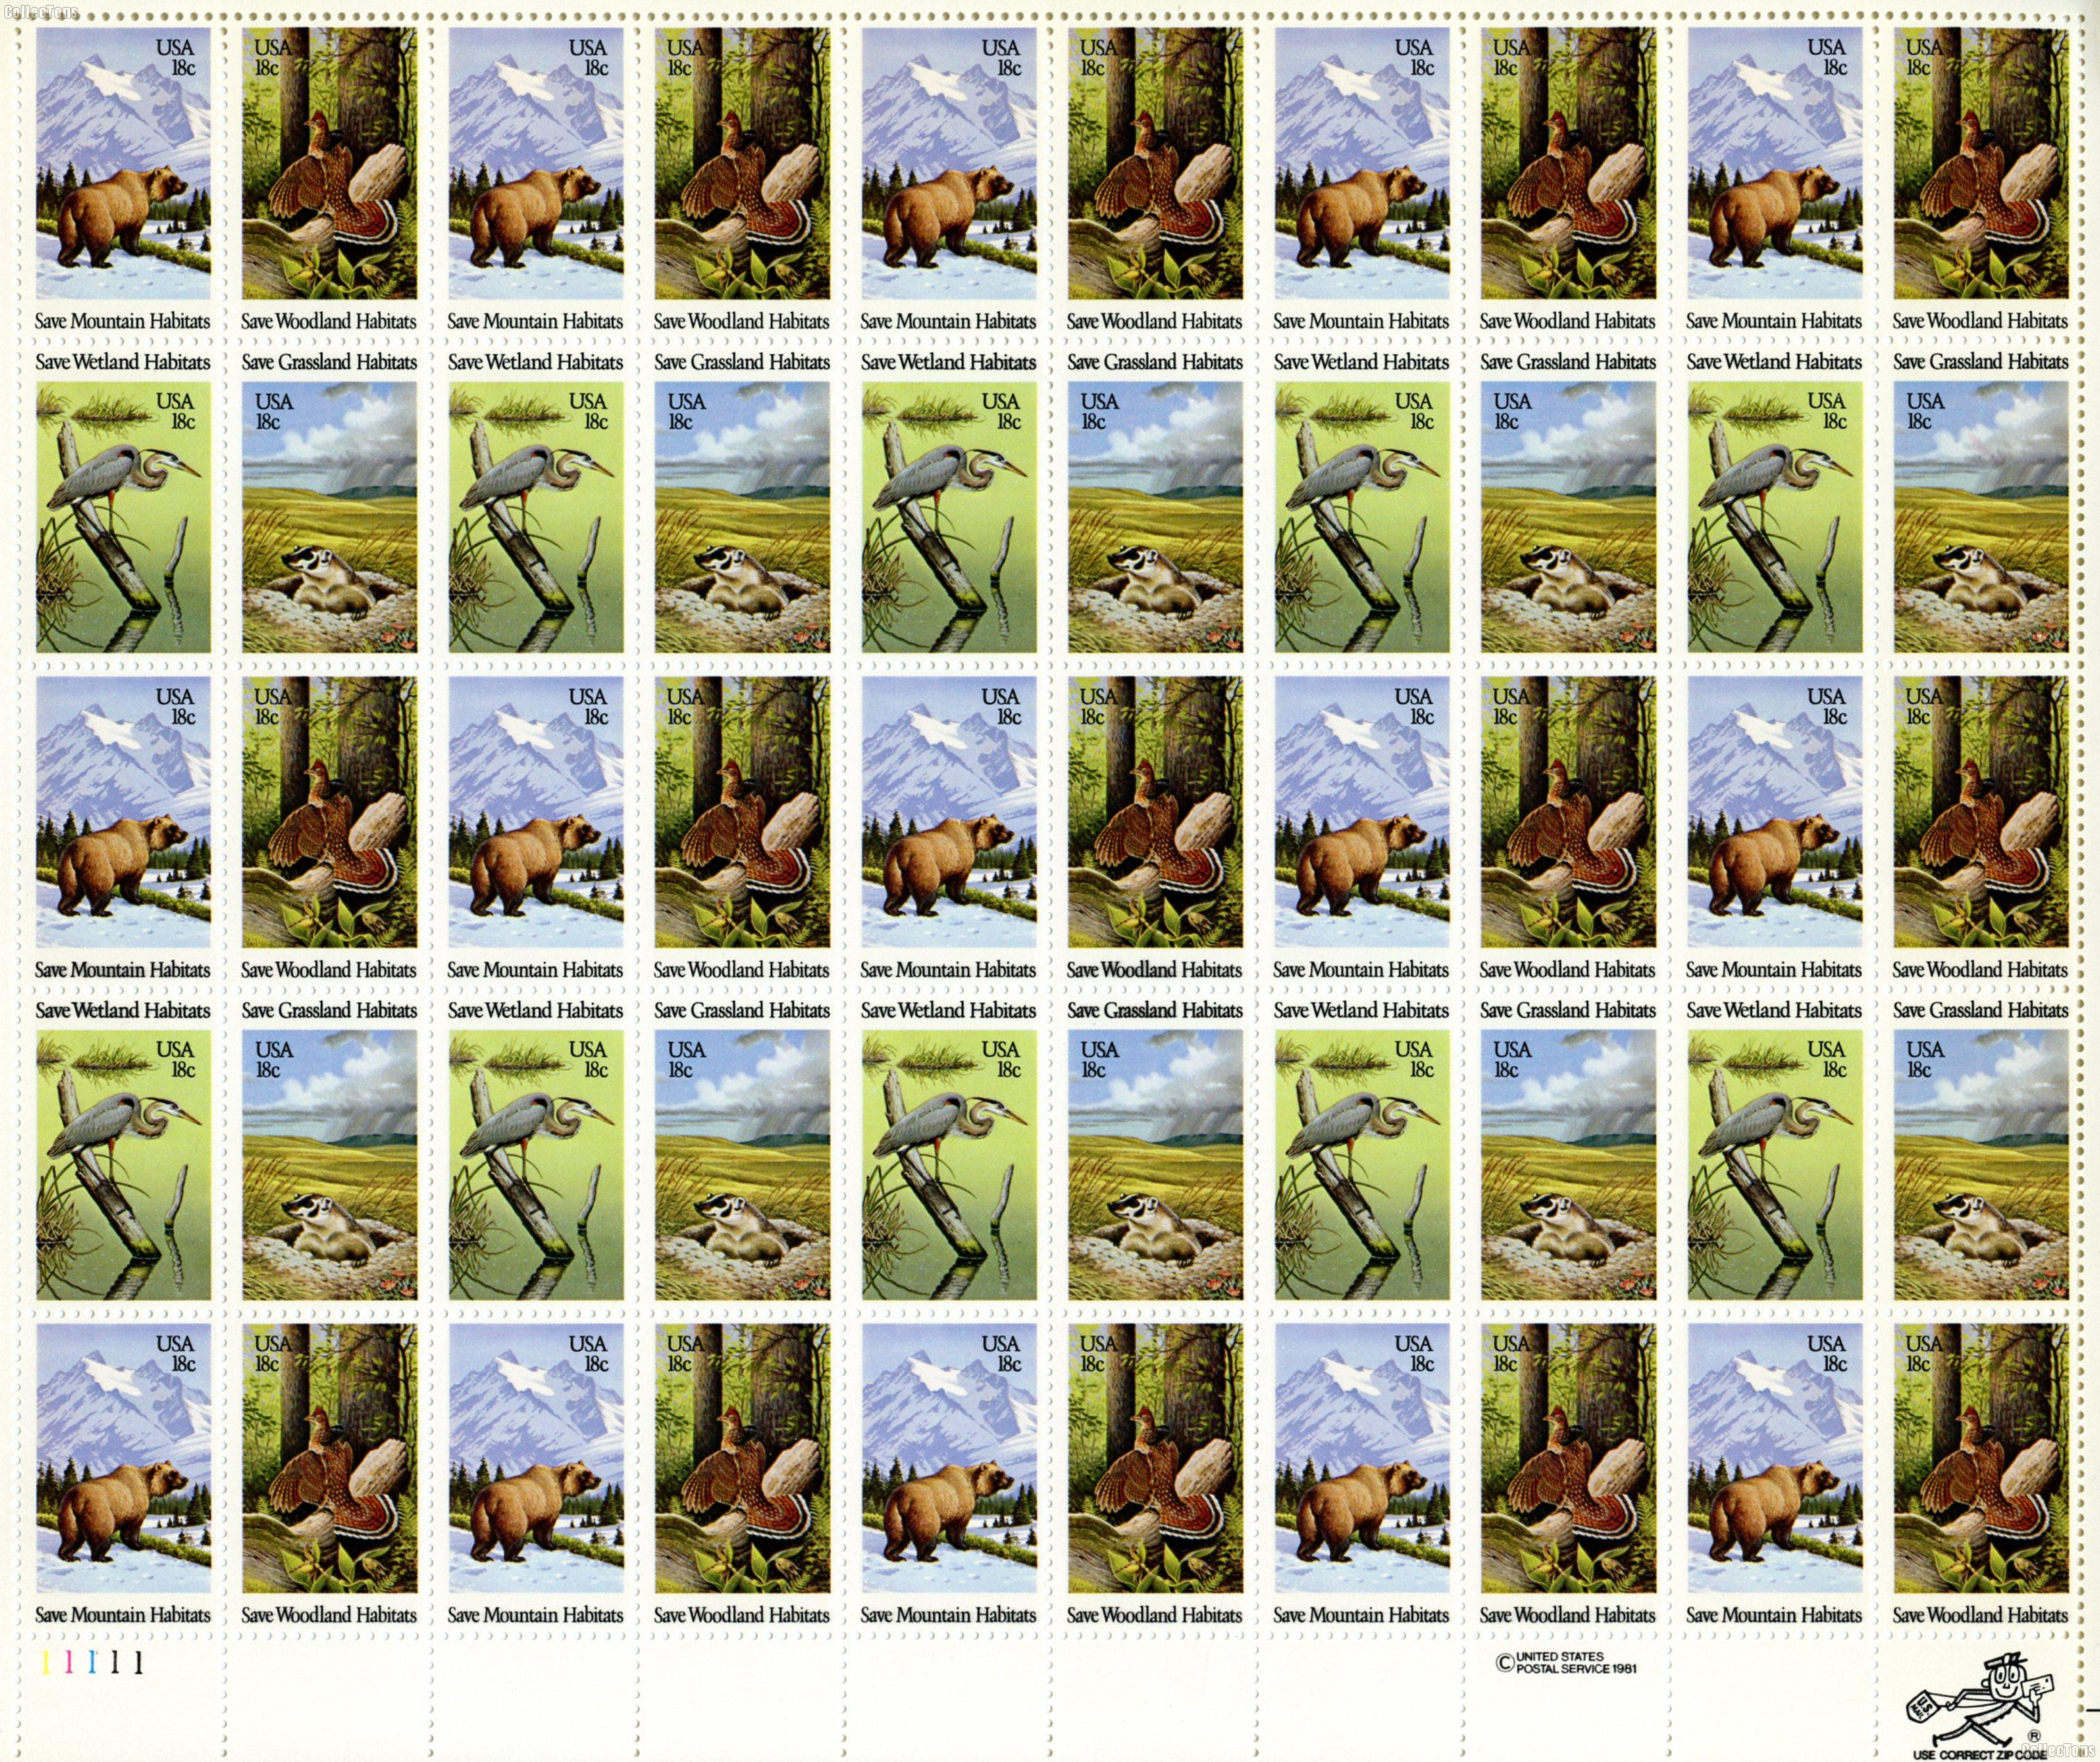 1981 Wildlife Habitats 18 Cent US Postage Stamp MNH Sheet of 50 Scott #1921-1924